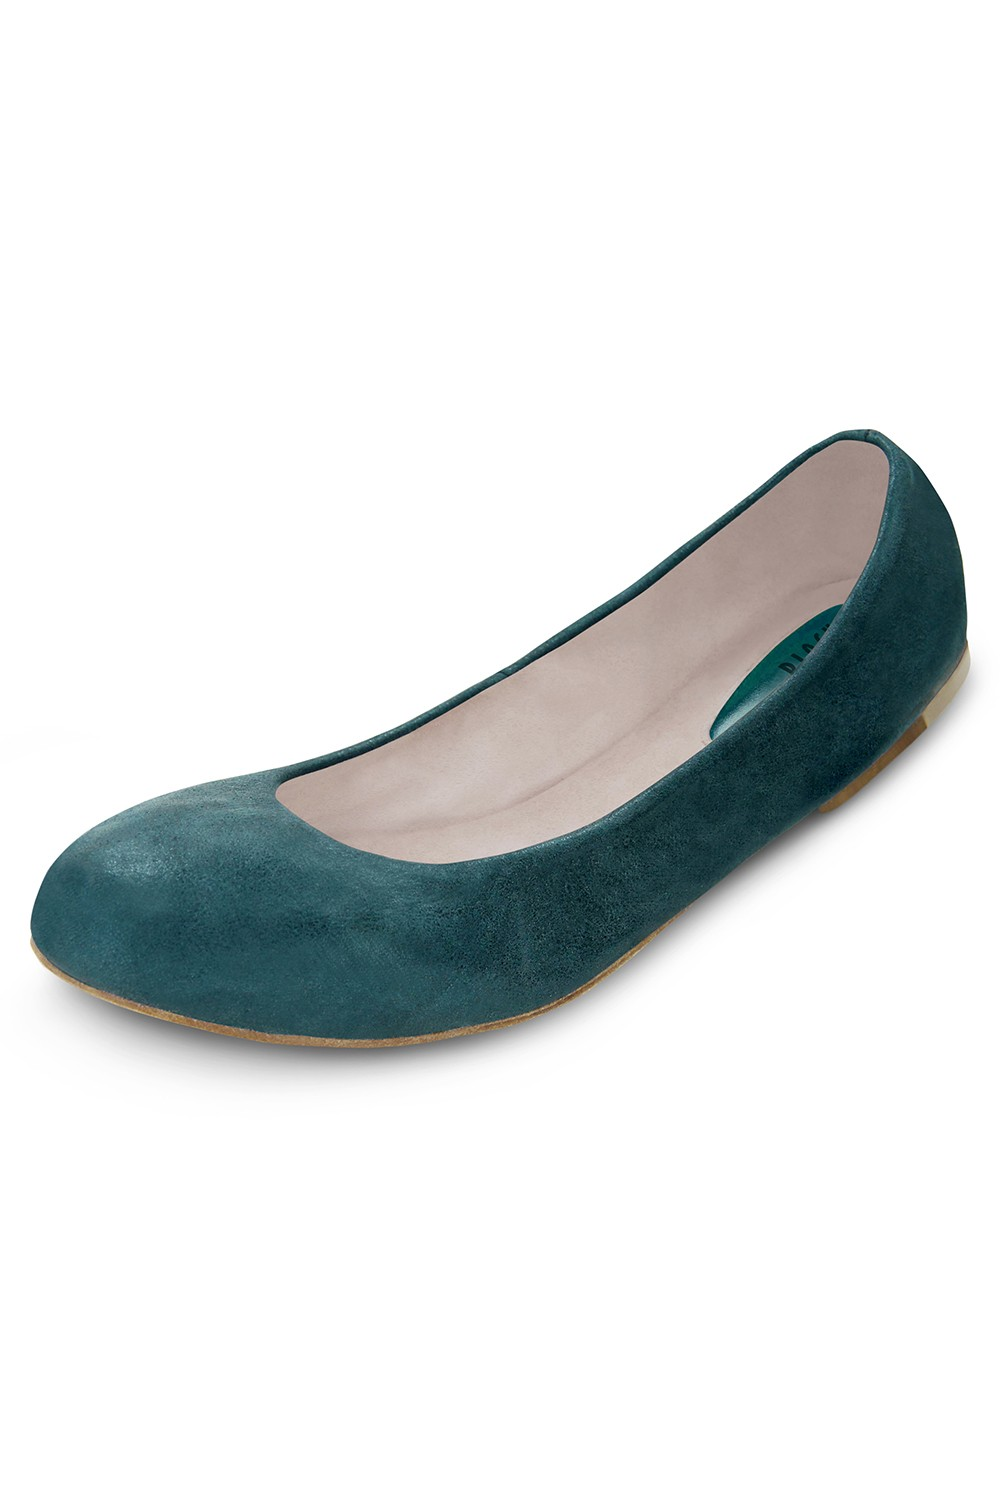 Lucy Ladies Ballet Flat Womens Fashion Shoes